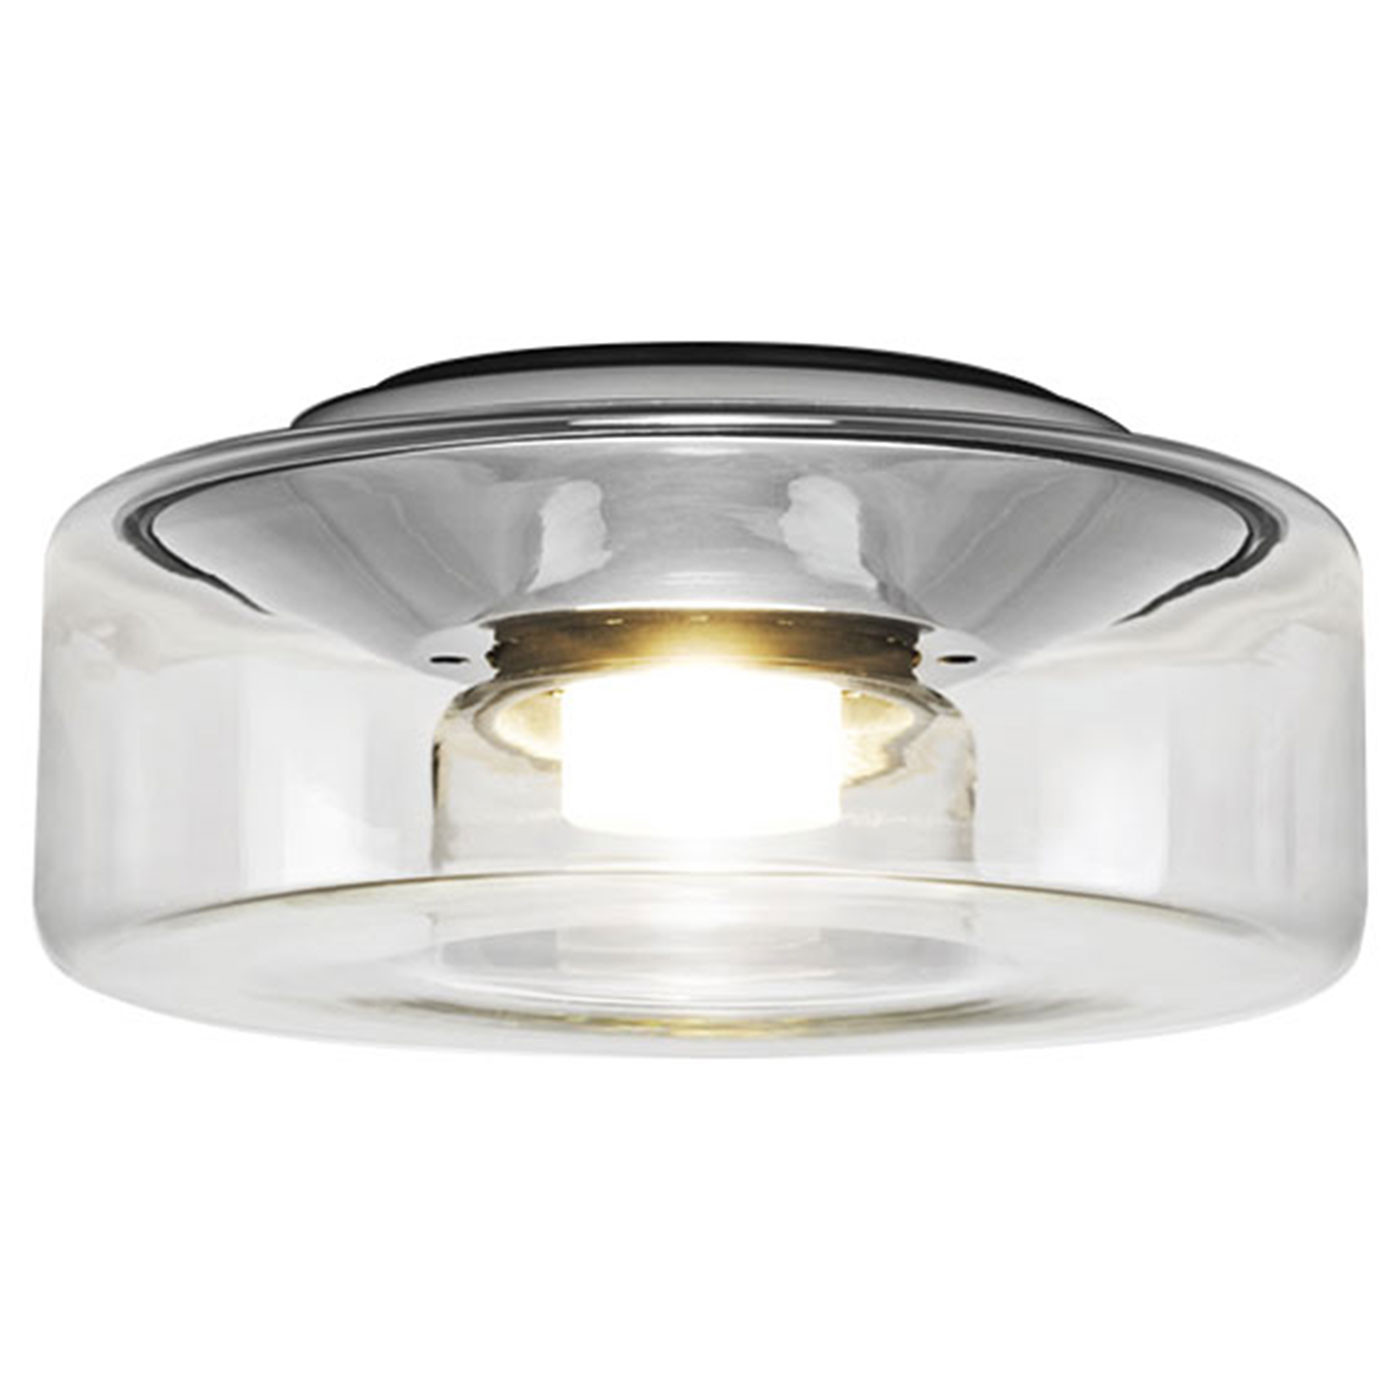 Serien Lighting Curling Ceiling L LED, 2700K